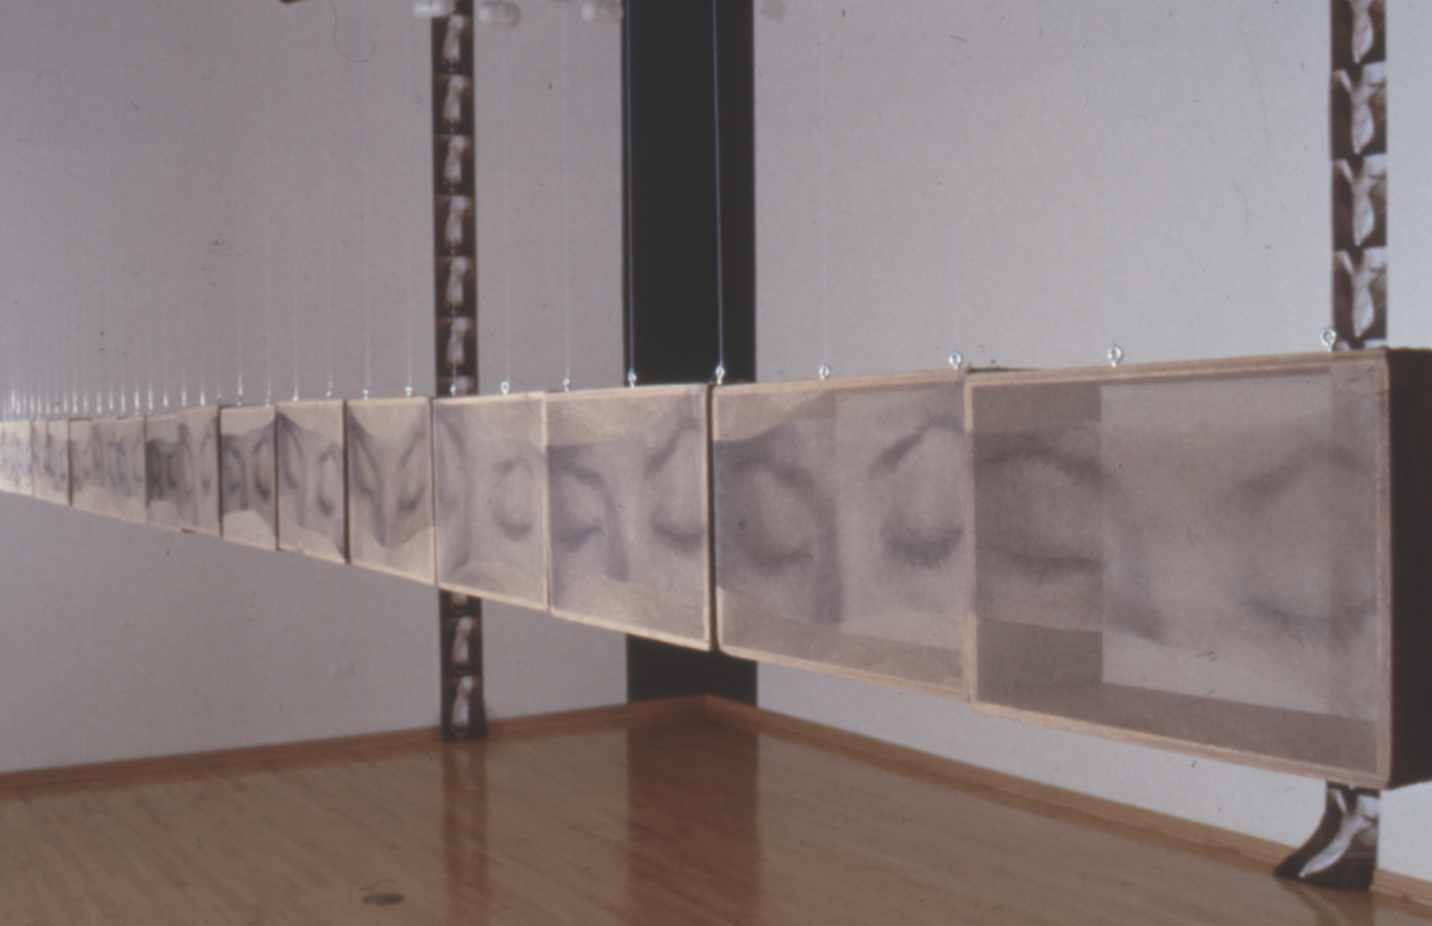 Installation View, Solo Exhibition / William A. Koehnline Gallery, Des Plaines IL / 2000